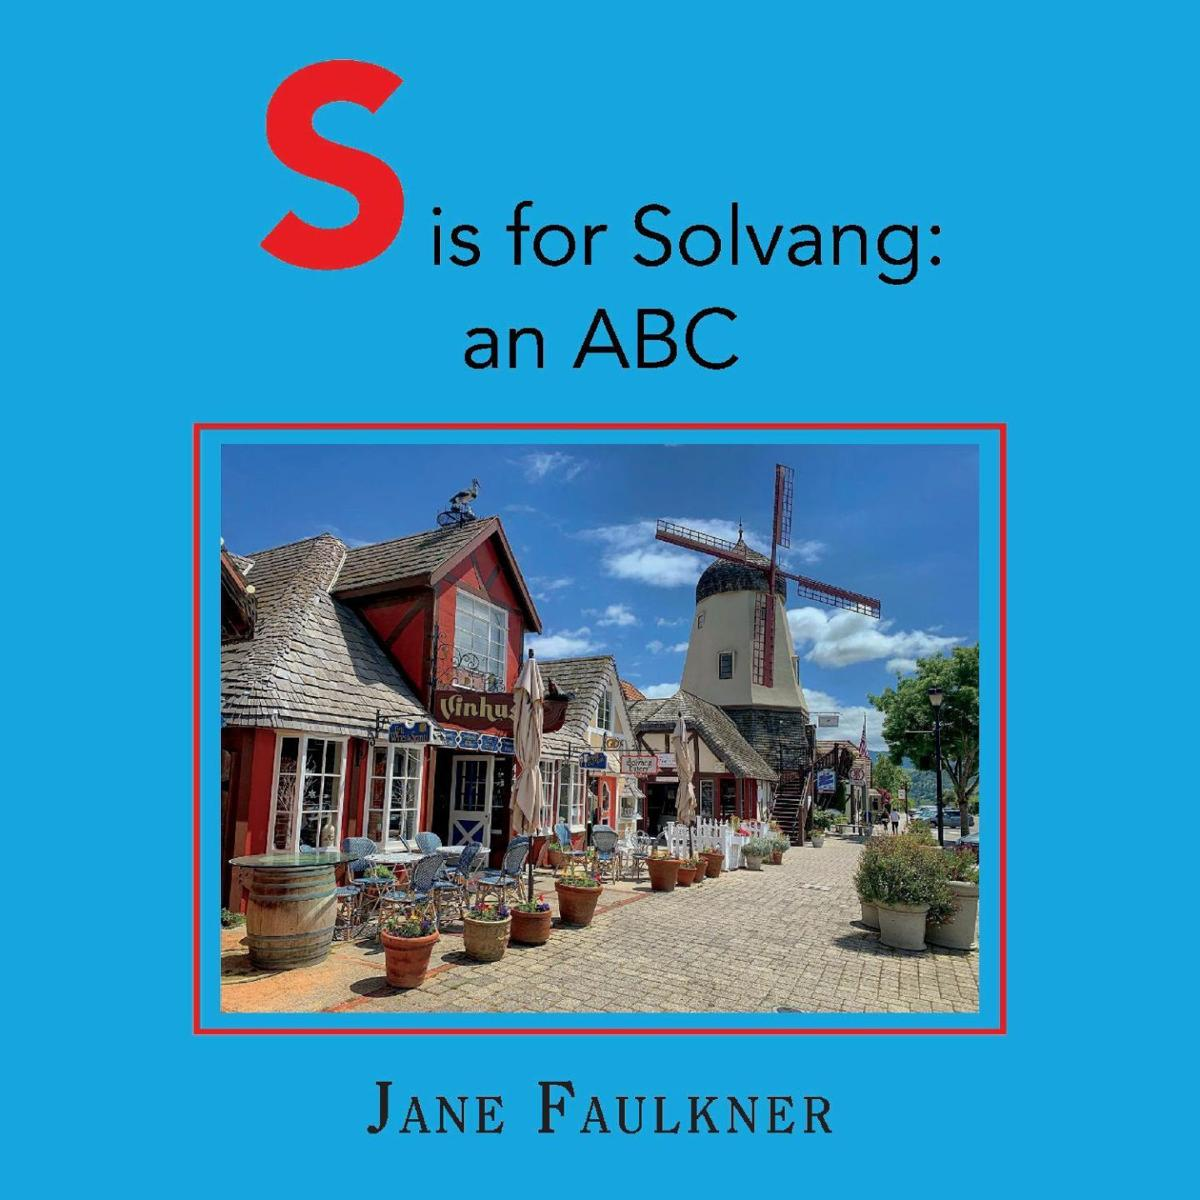 033021 S is for Solvang